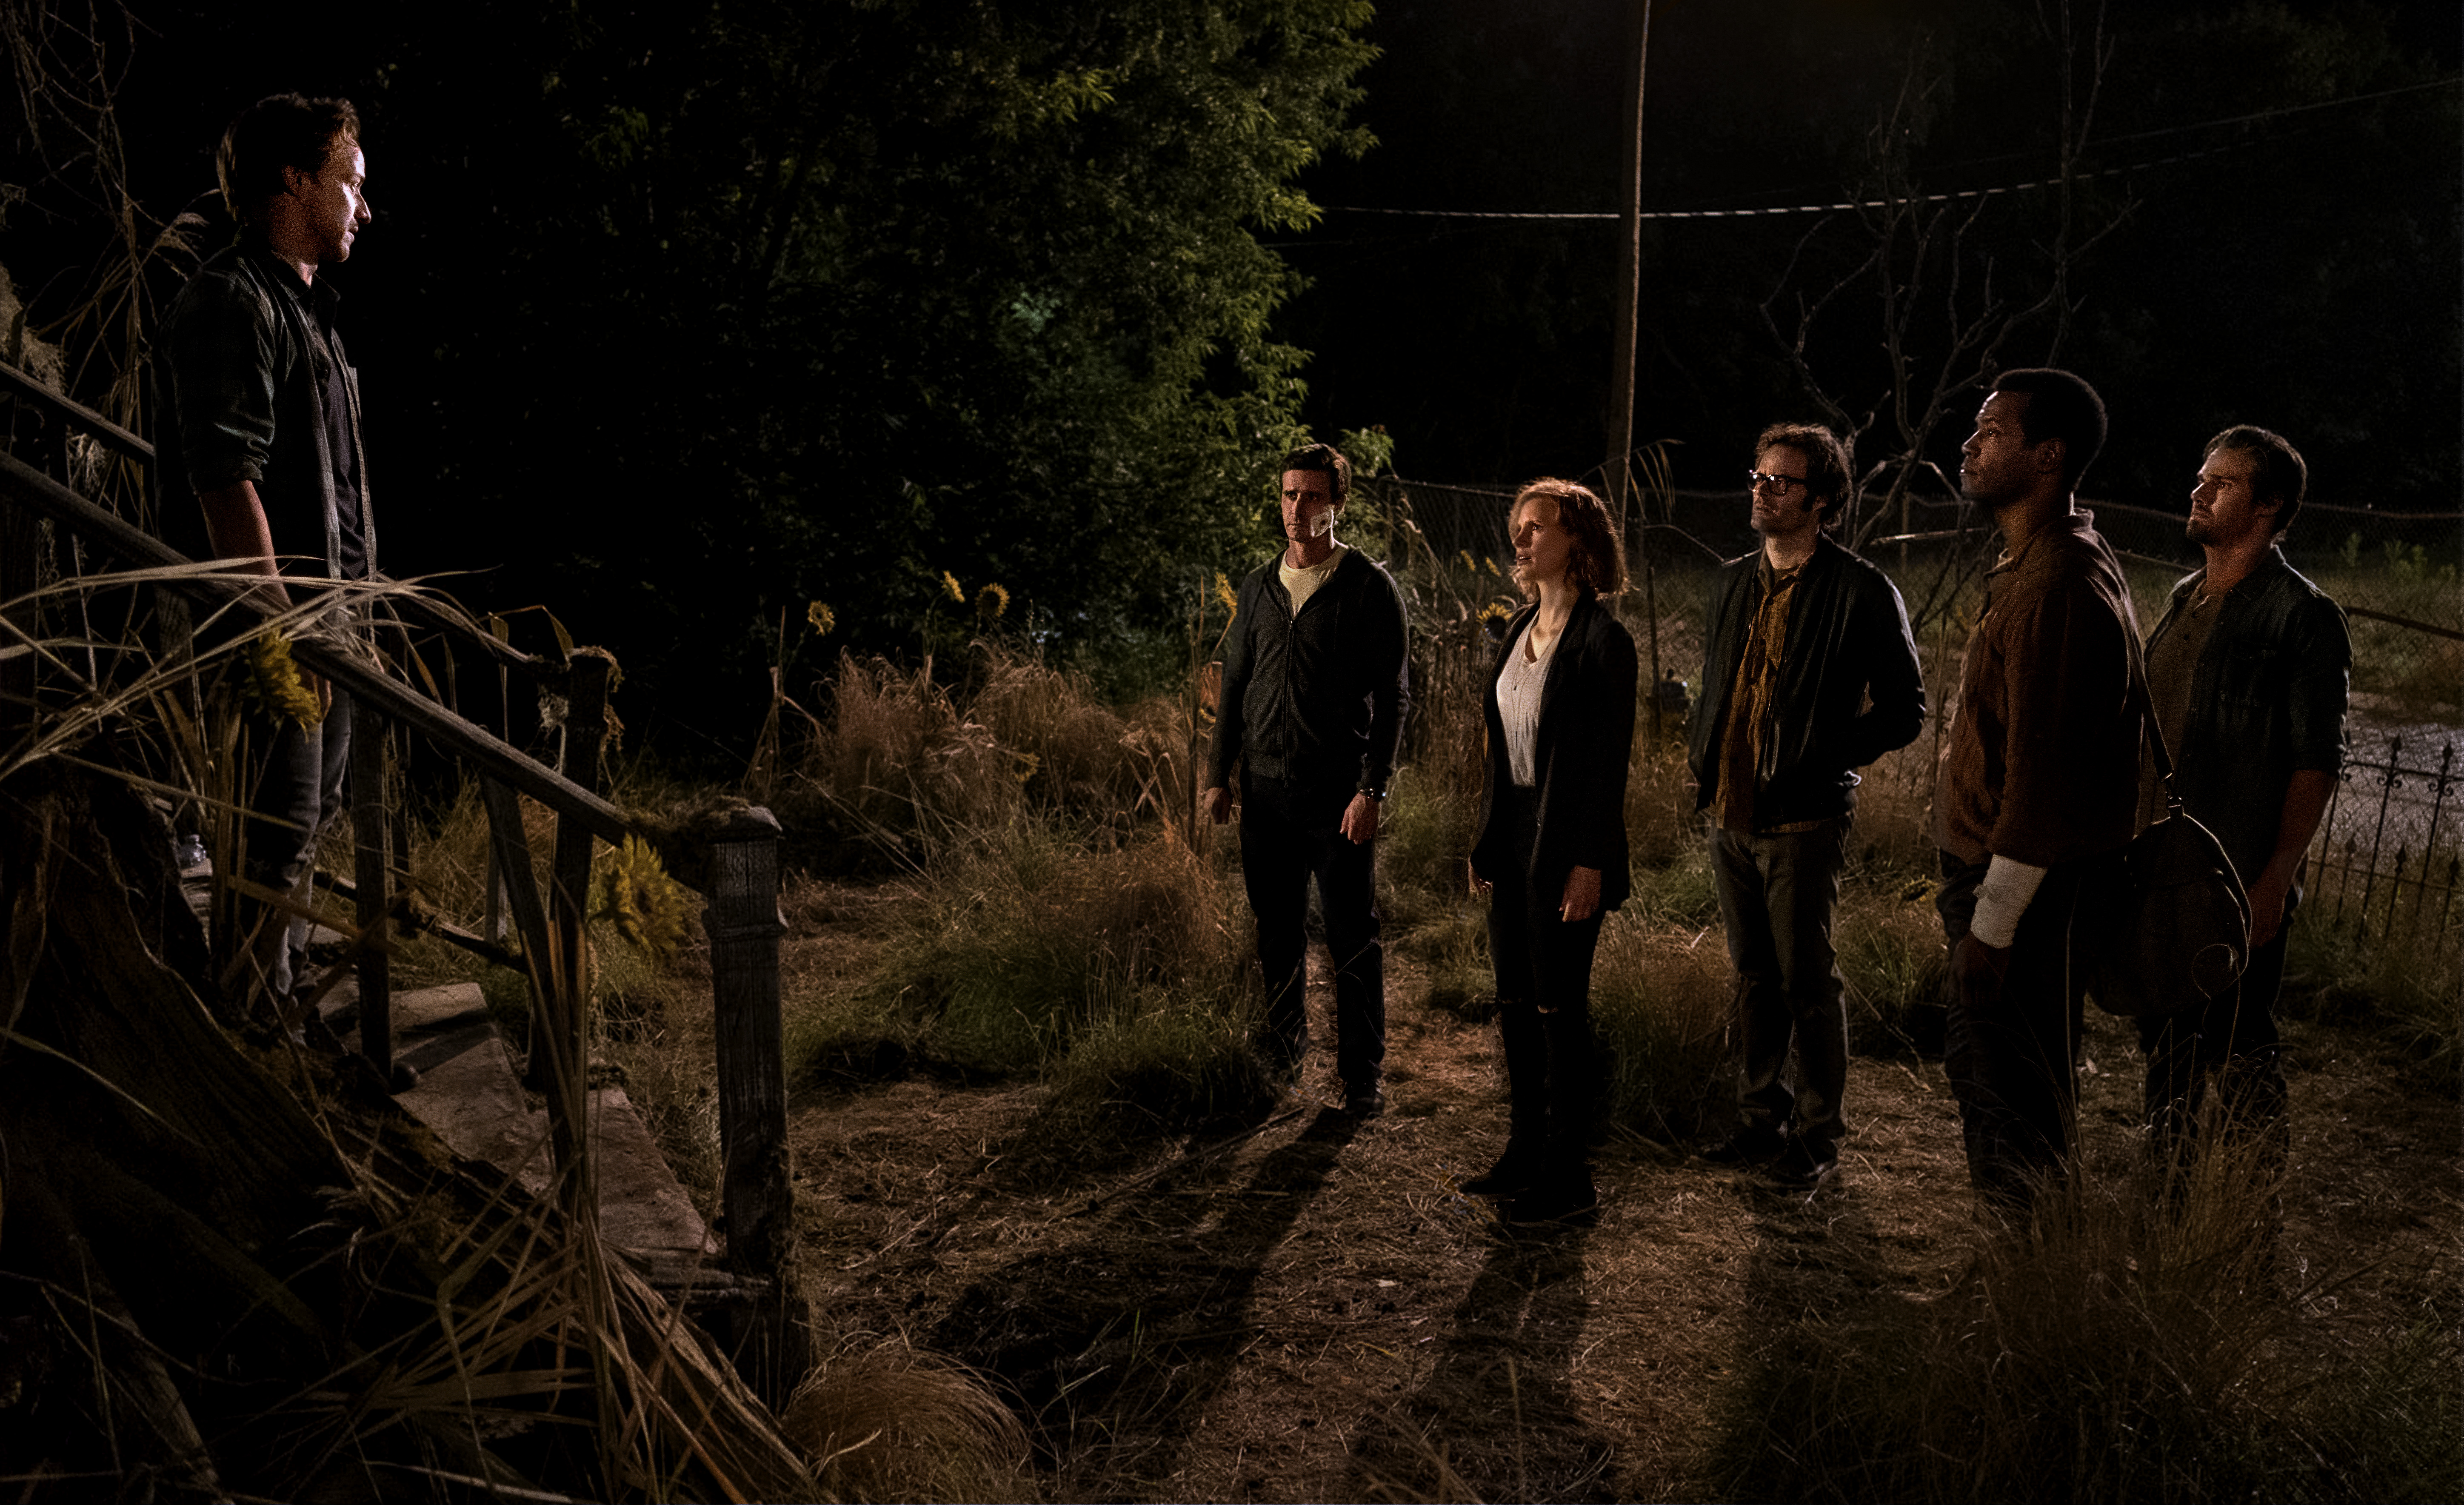 (L-r) James McAvoy as Bill Denbrough, James Ransone as Eddie Kaspbrak, Jessica Chastain as Beverly Marsh, Bill Hader as Richie Tozier, Isaiah Mustafa as Mike Hanlon, and Jay Ryan as Ben Hanscom in 'It Chapter Two'